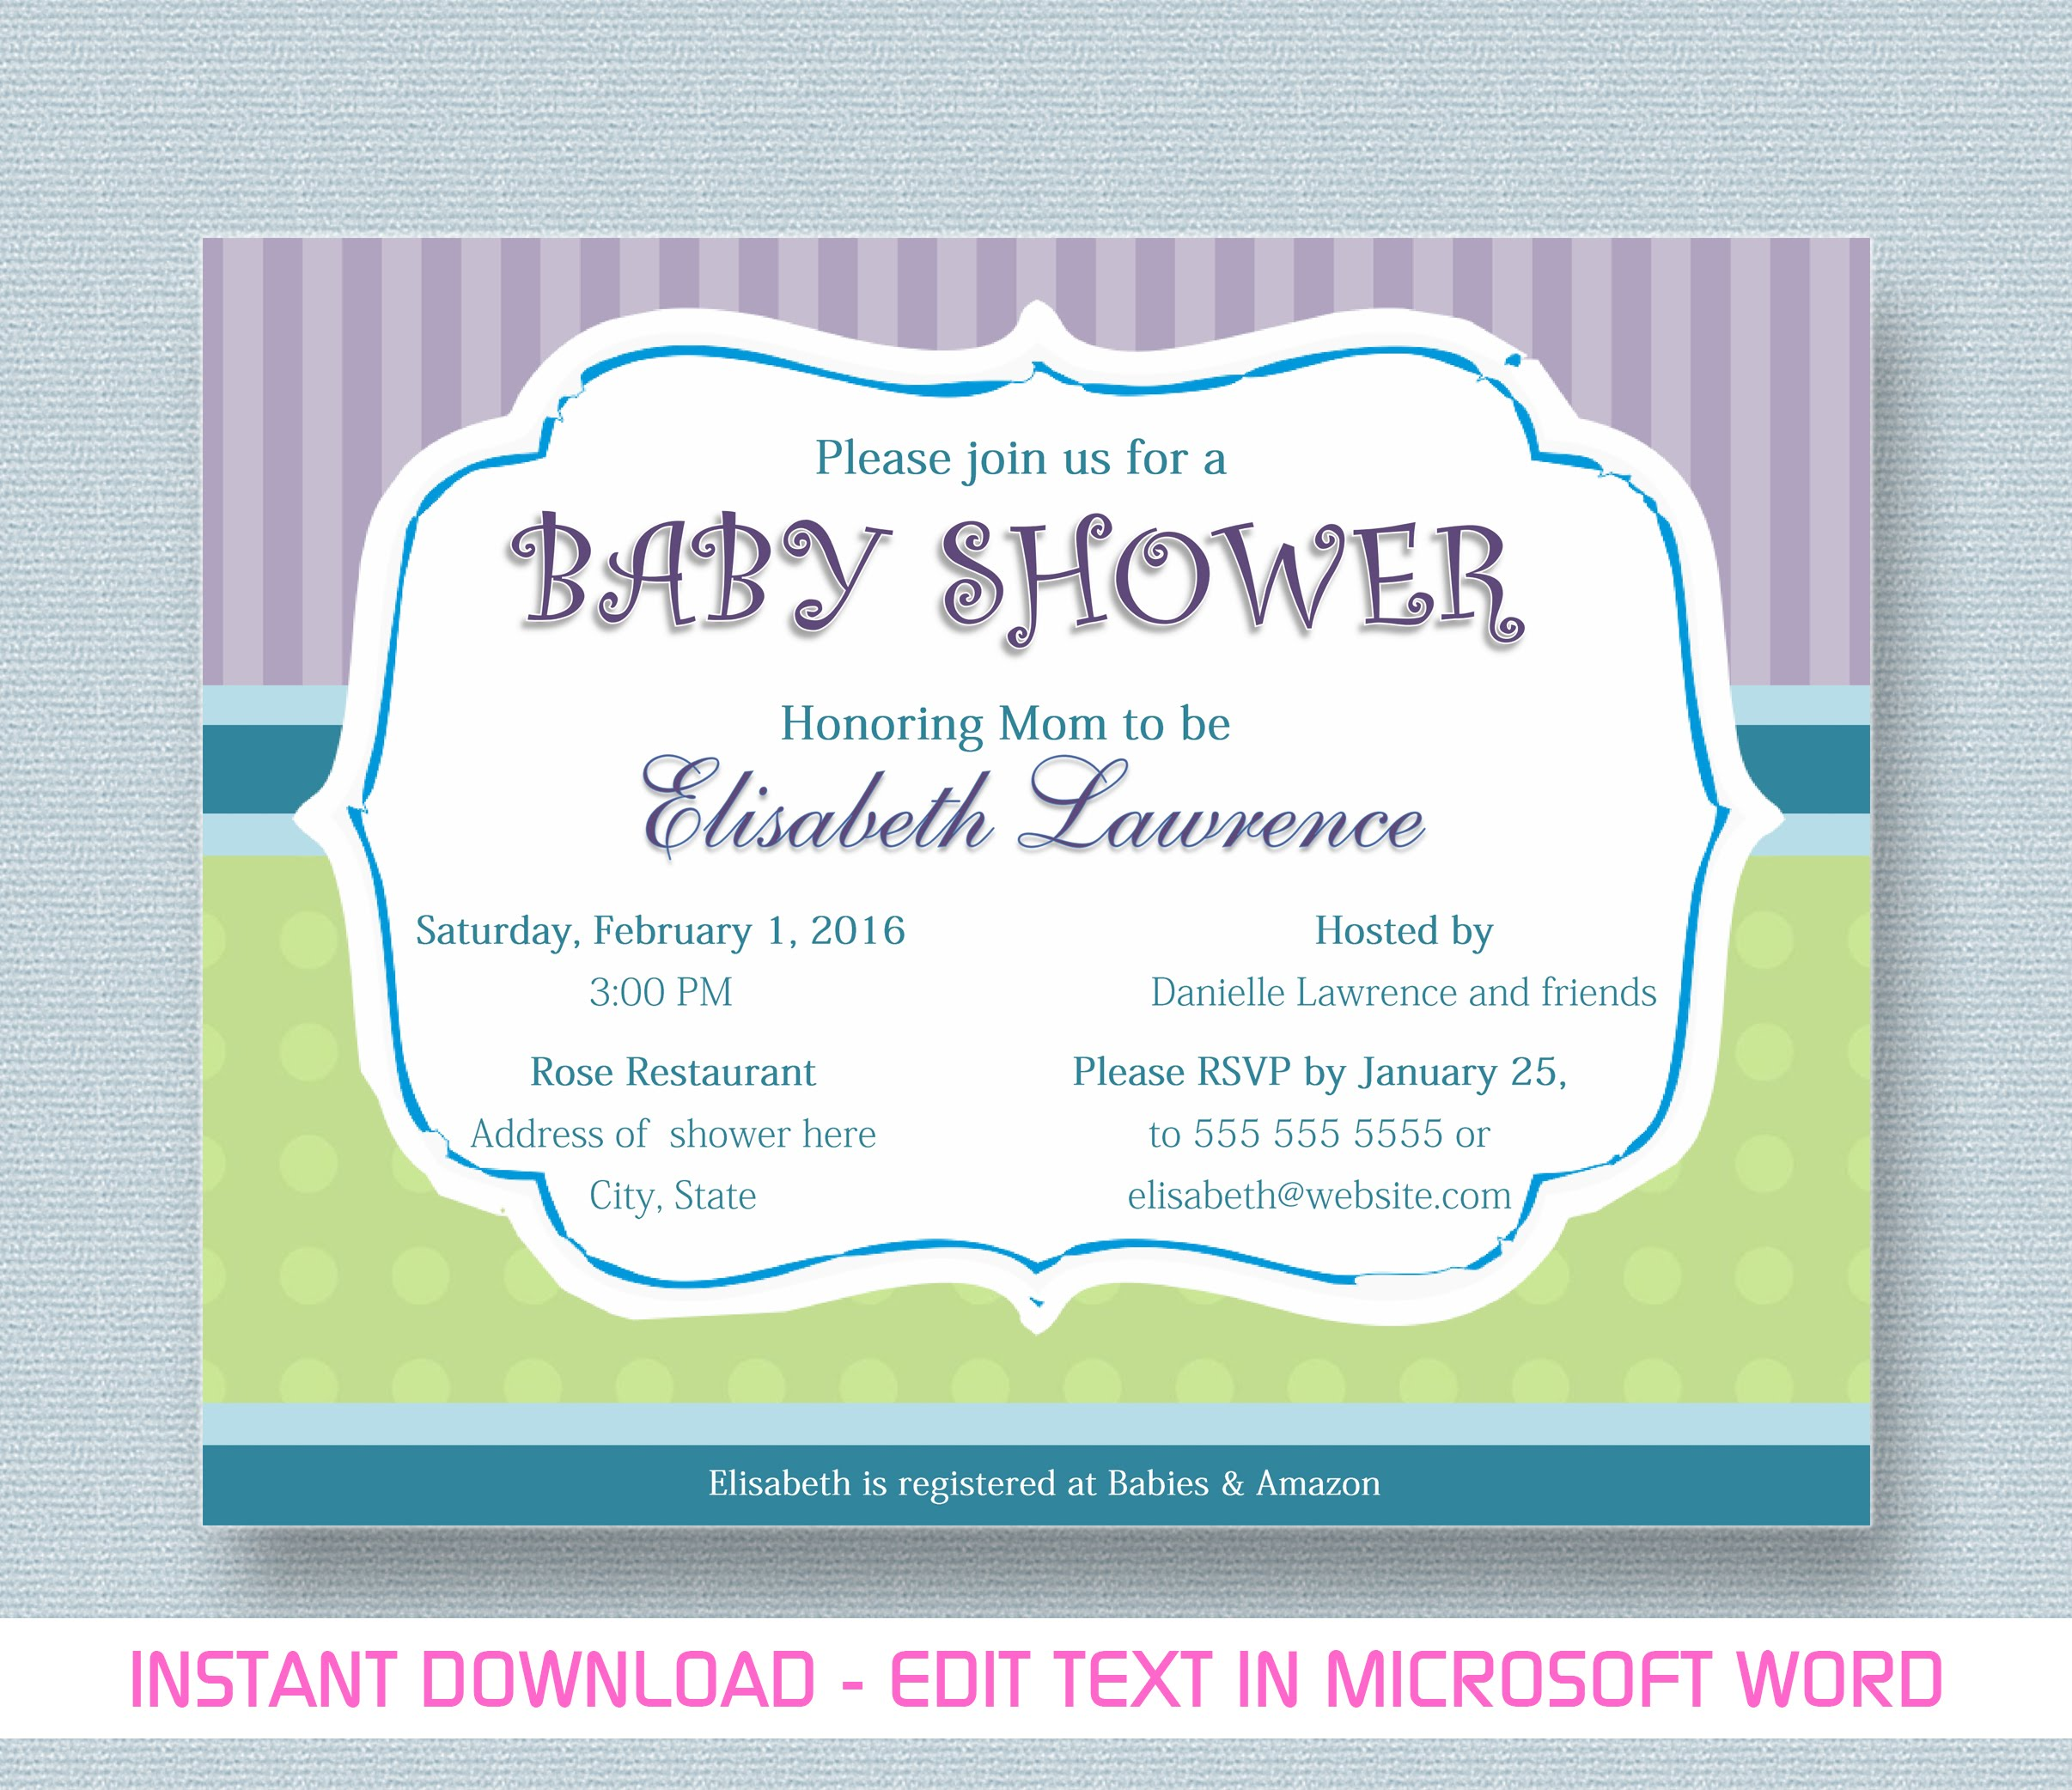 Full Size of Baby Shower:baby Shower Invitations Baby Girl Party Plates Baby Girl Themes Elegant Baby Shower Decorations Baby Girl Themes For Baby Shower